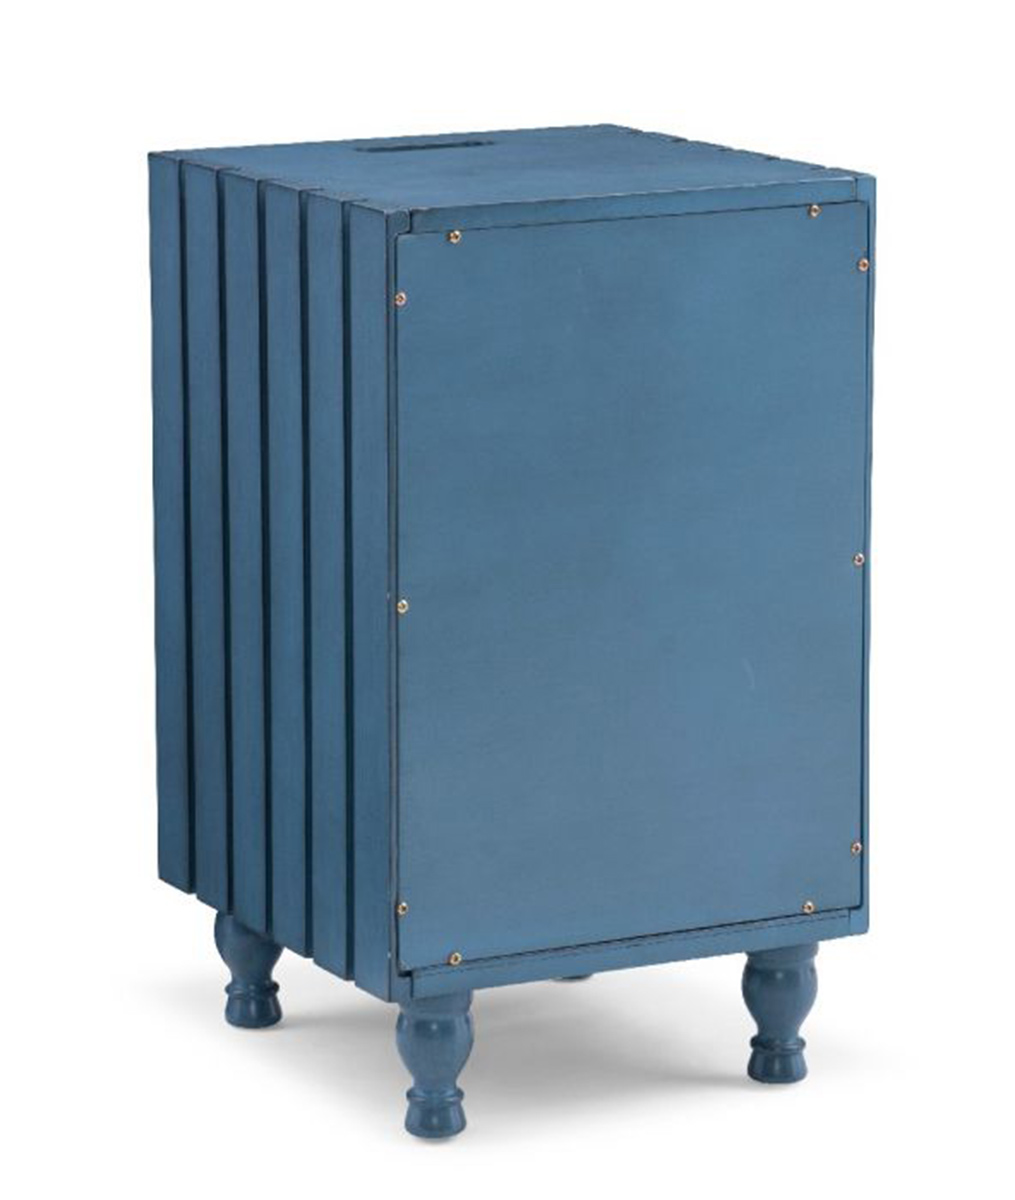 Powell Royer Table - Blue